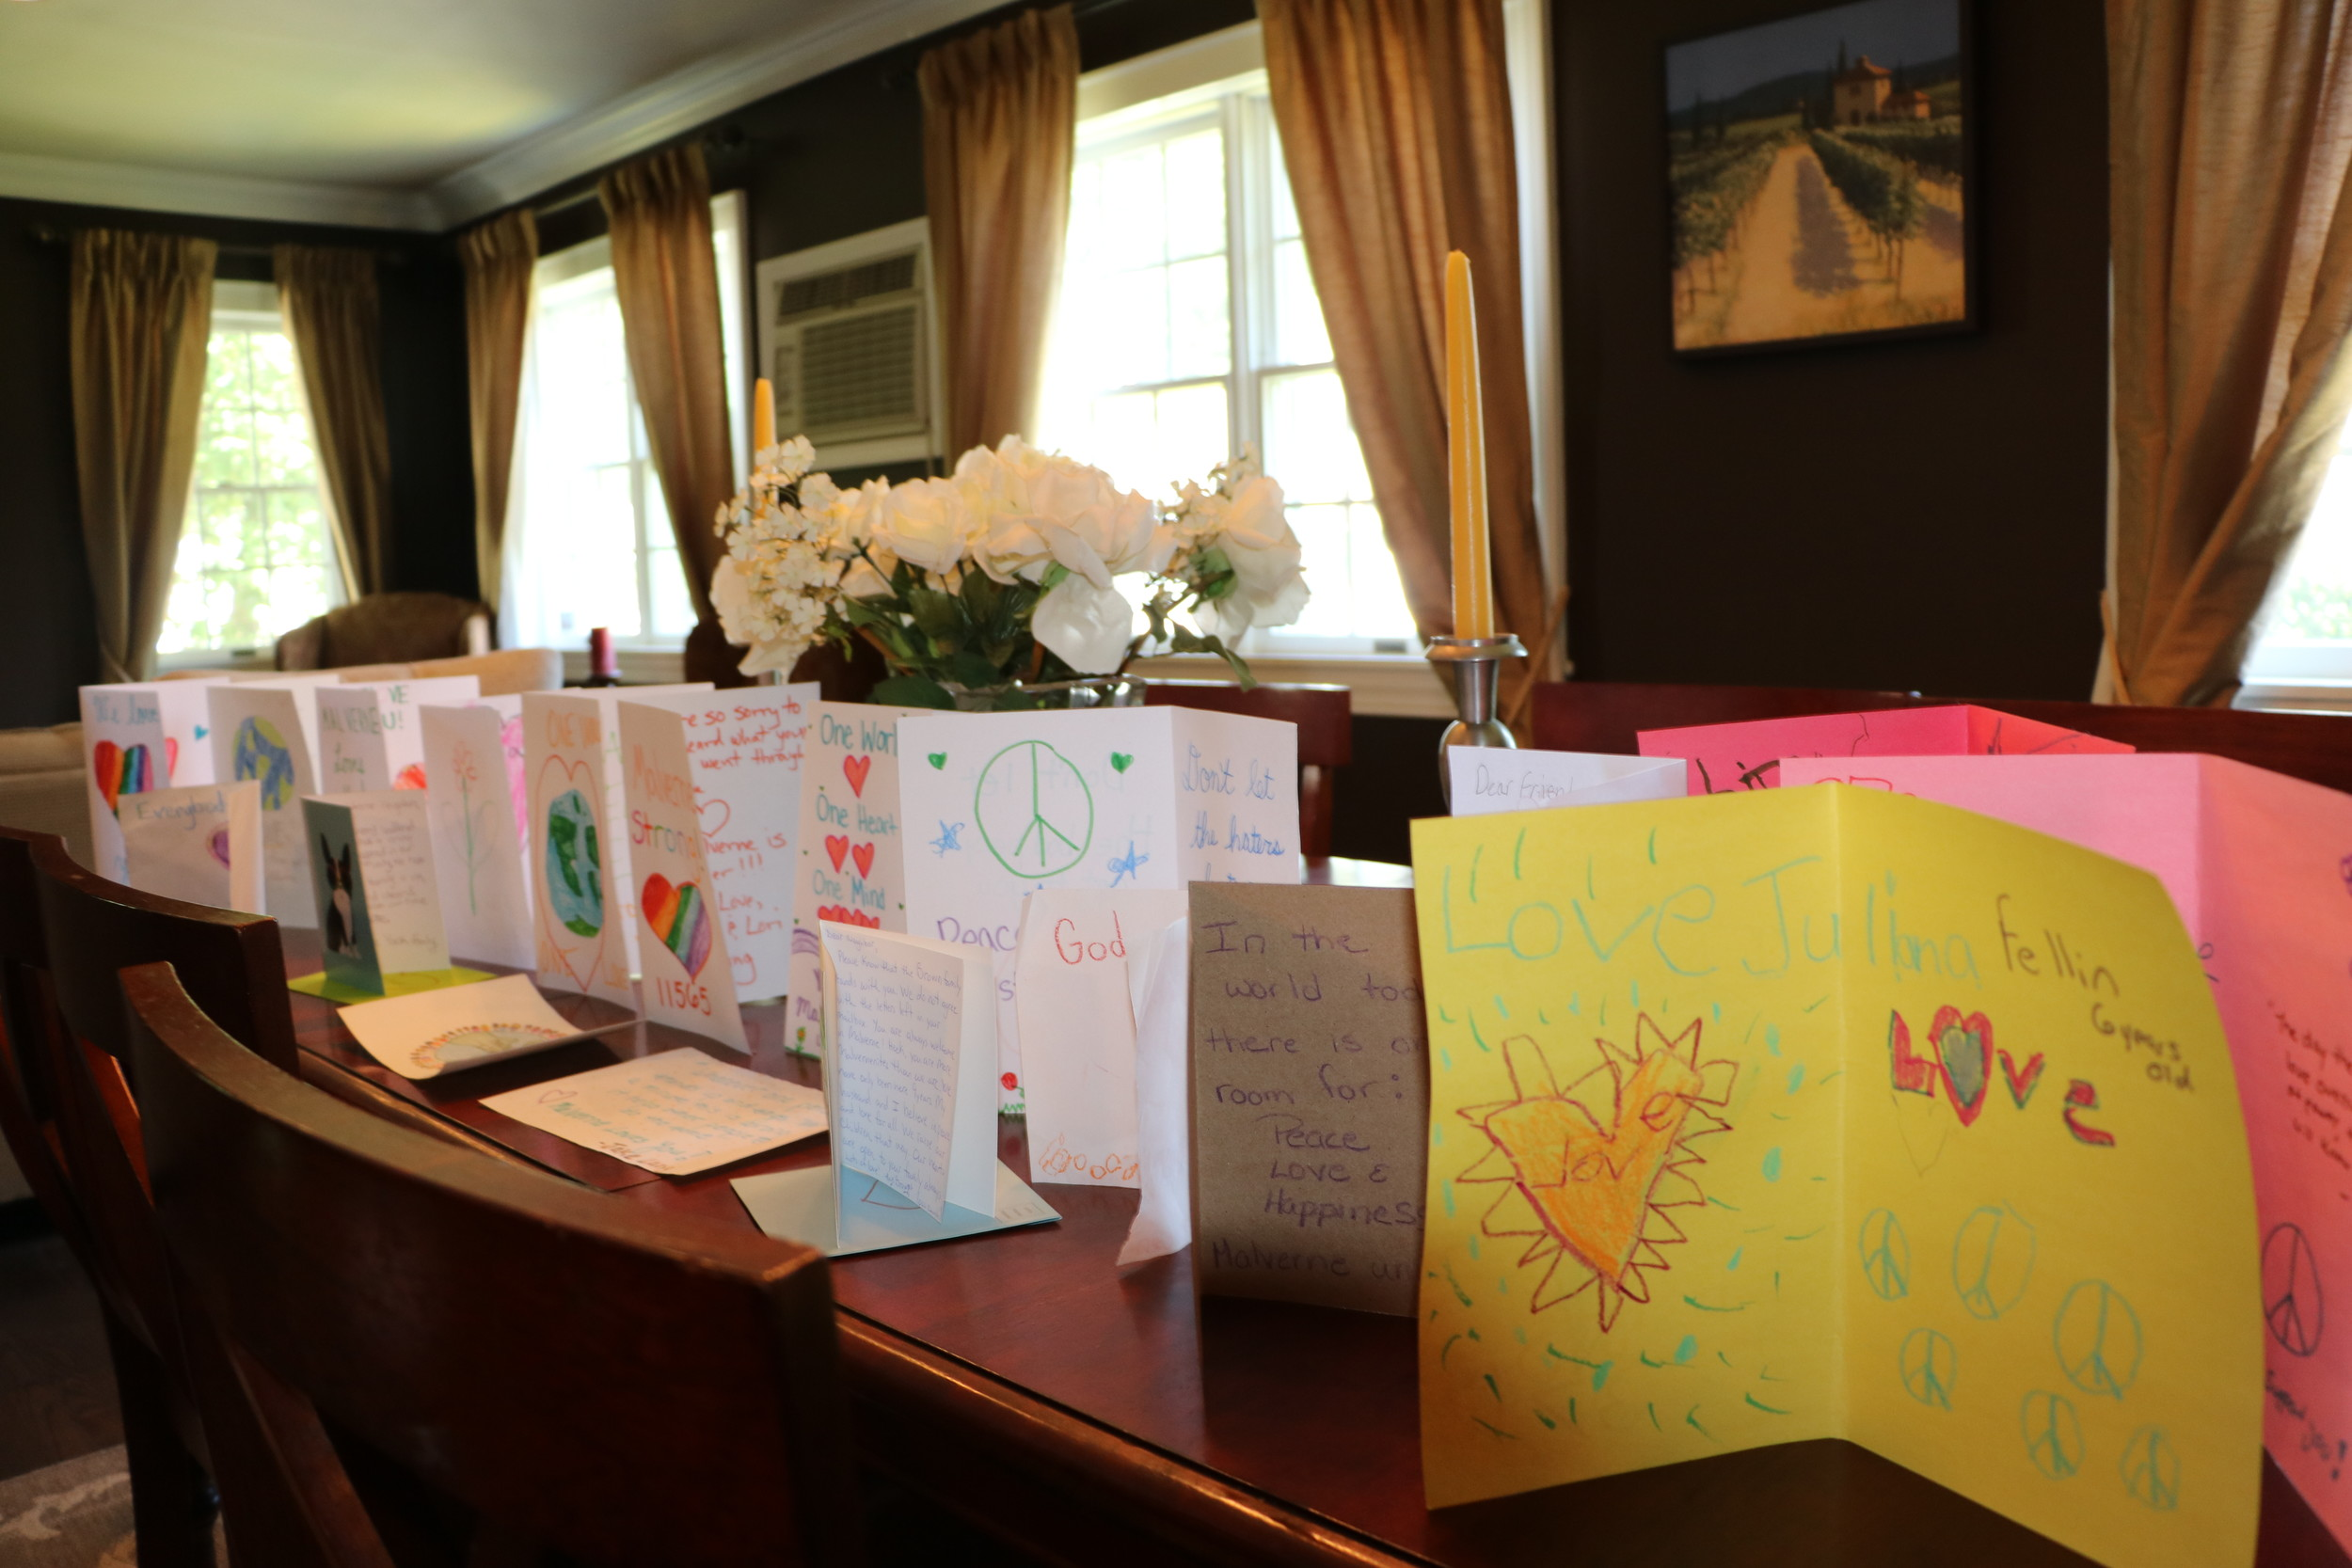 Messages of love, written by Malverne children, were addressed to members of a Muslim family who were victims of a bias incident last week.